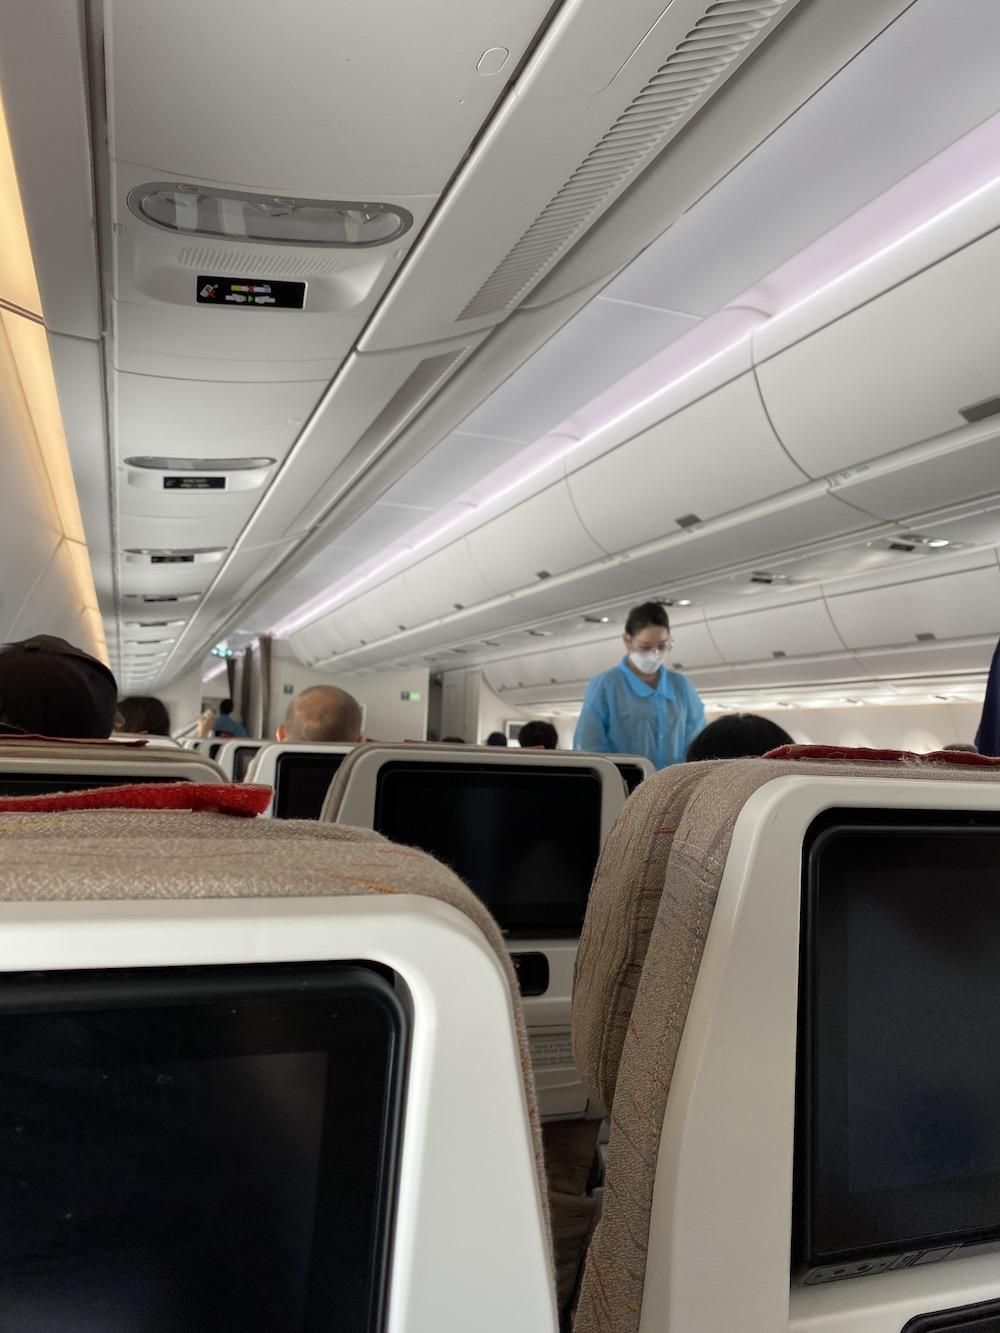 Flight attendants ensure passengers properly prepare for take-off. The biggest difference between this flight and pre-COVID-19 flights was the use of personal protective equipment.